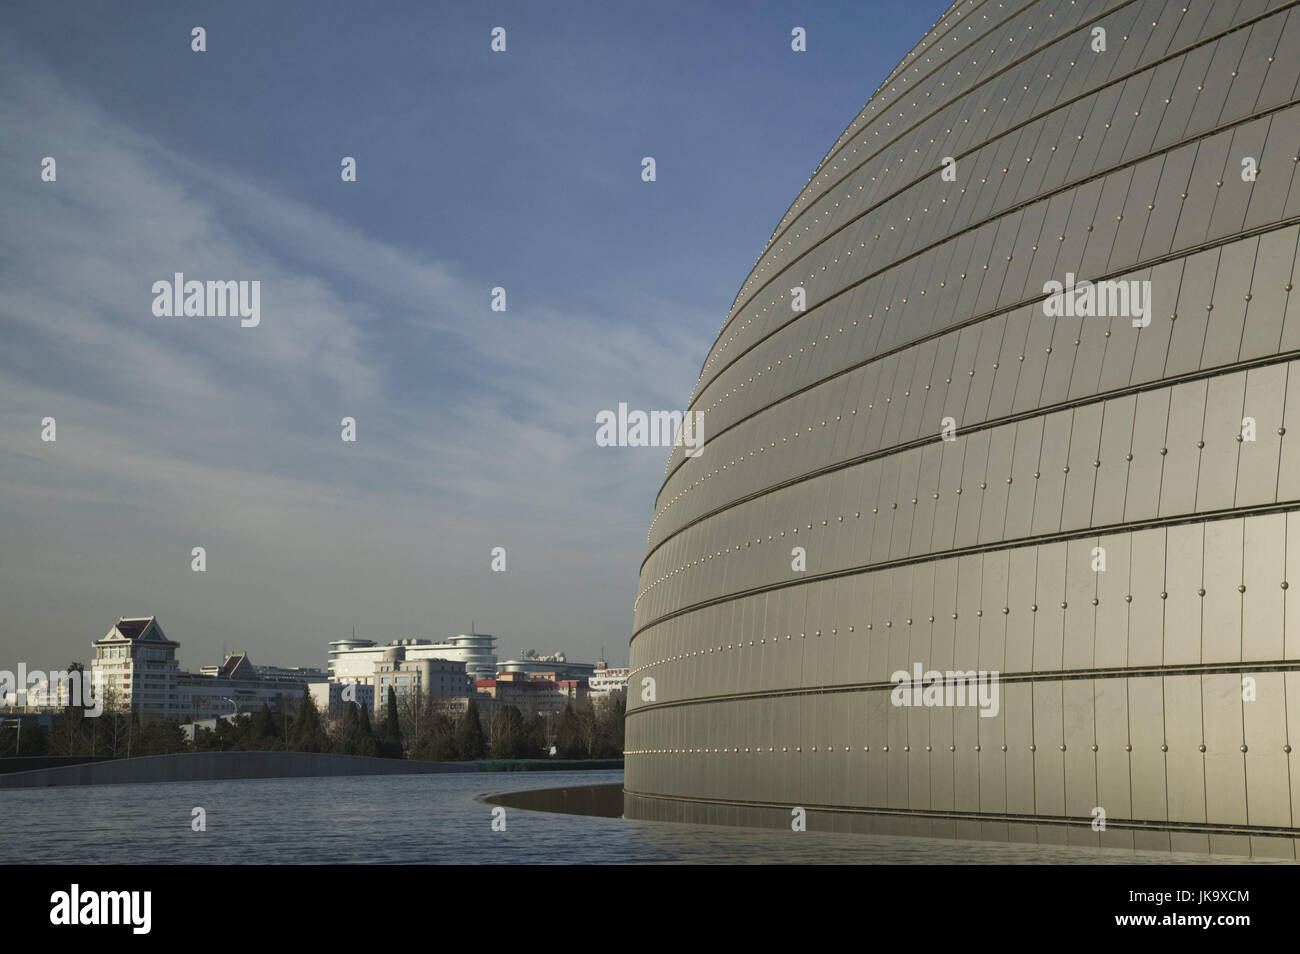 China, Peking, Tiananmen Platz,  National Center of Performing Arts,  Fassade, Detail,  Asien, Ostasien, Konzerthaus, - Stock Image